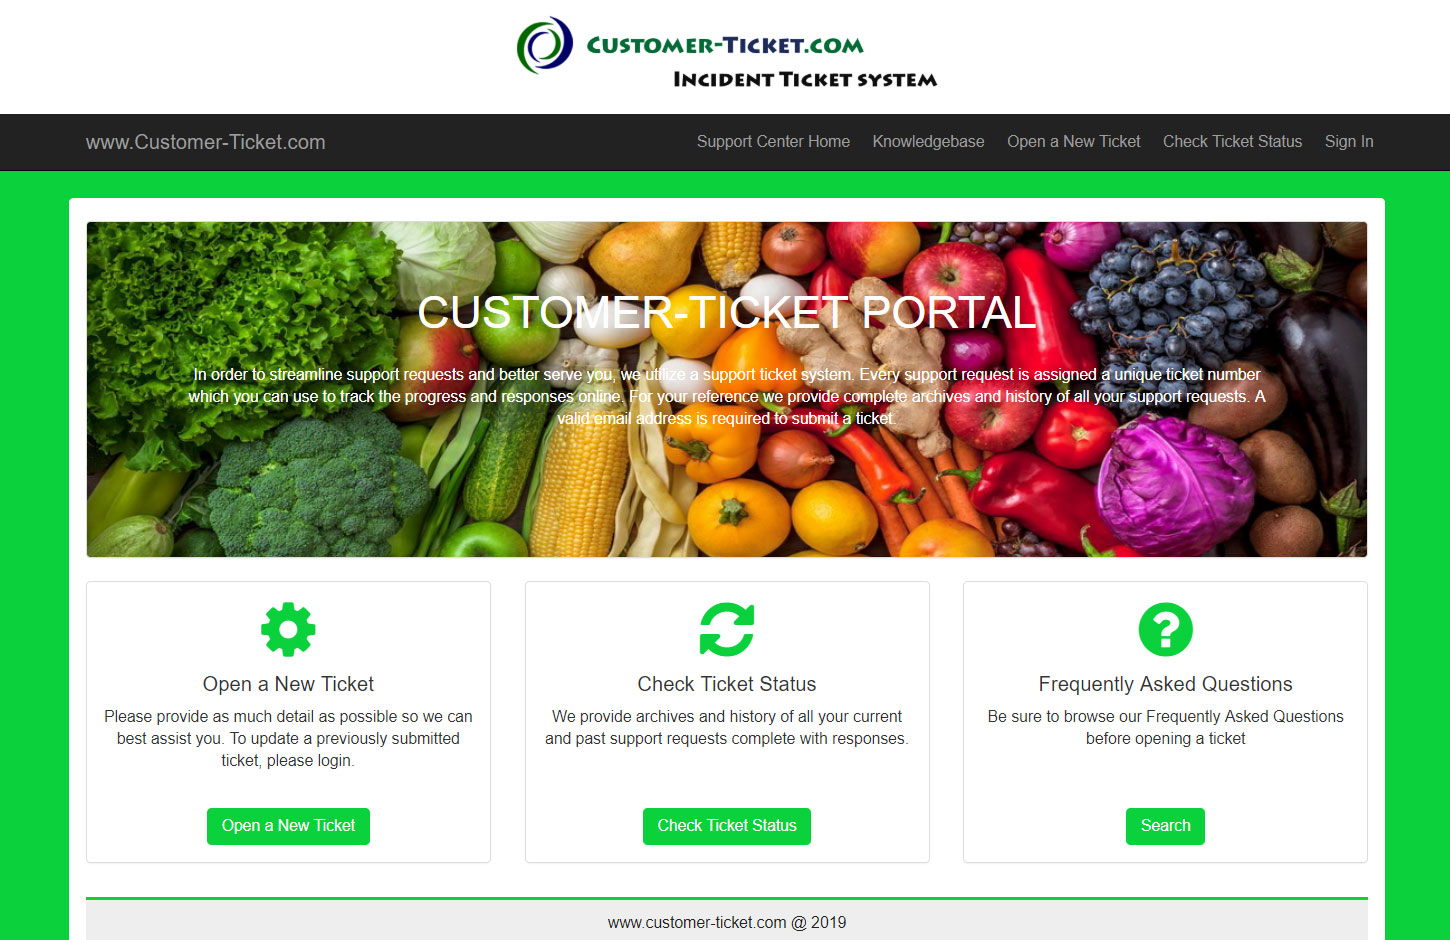 helpdesk color theme green RGB code 0ad13c for healthy food business